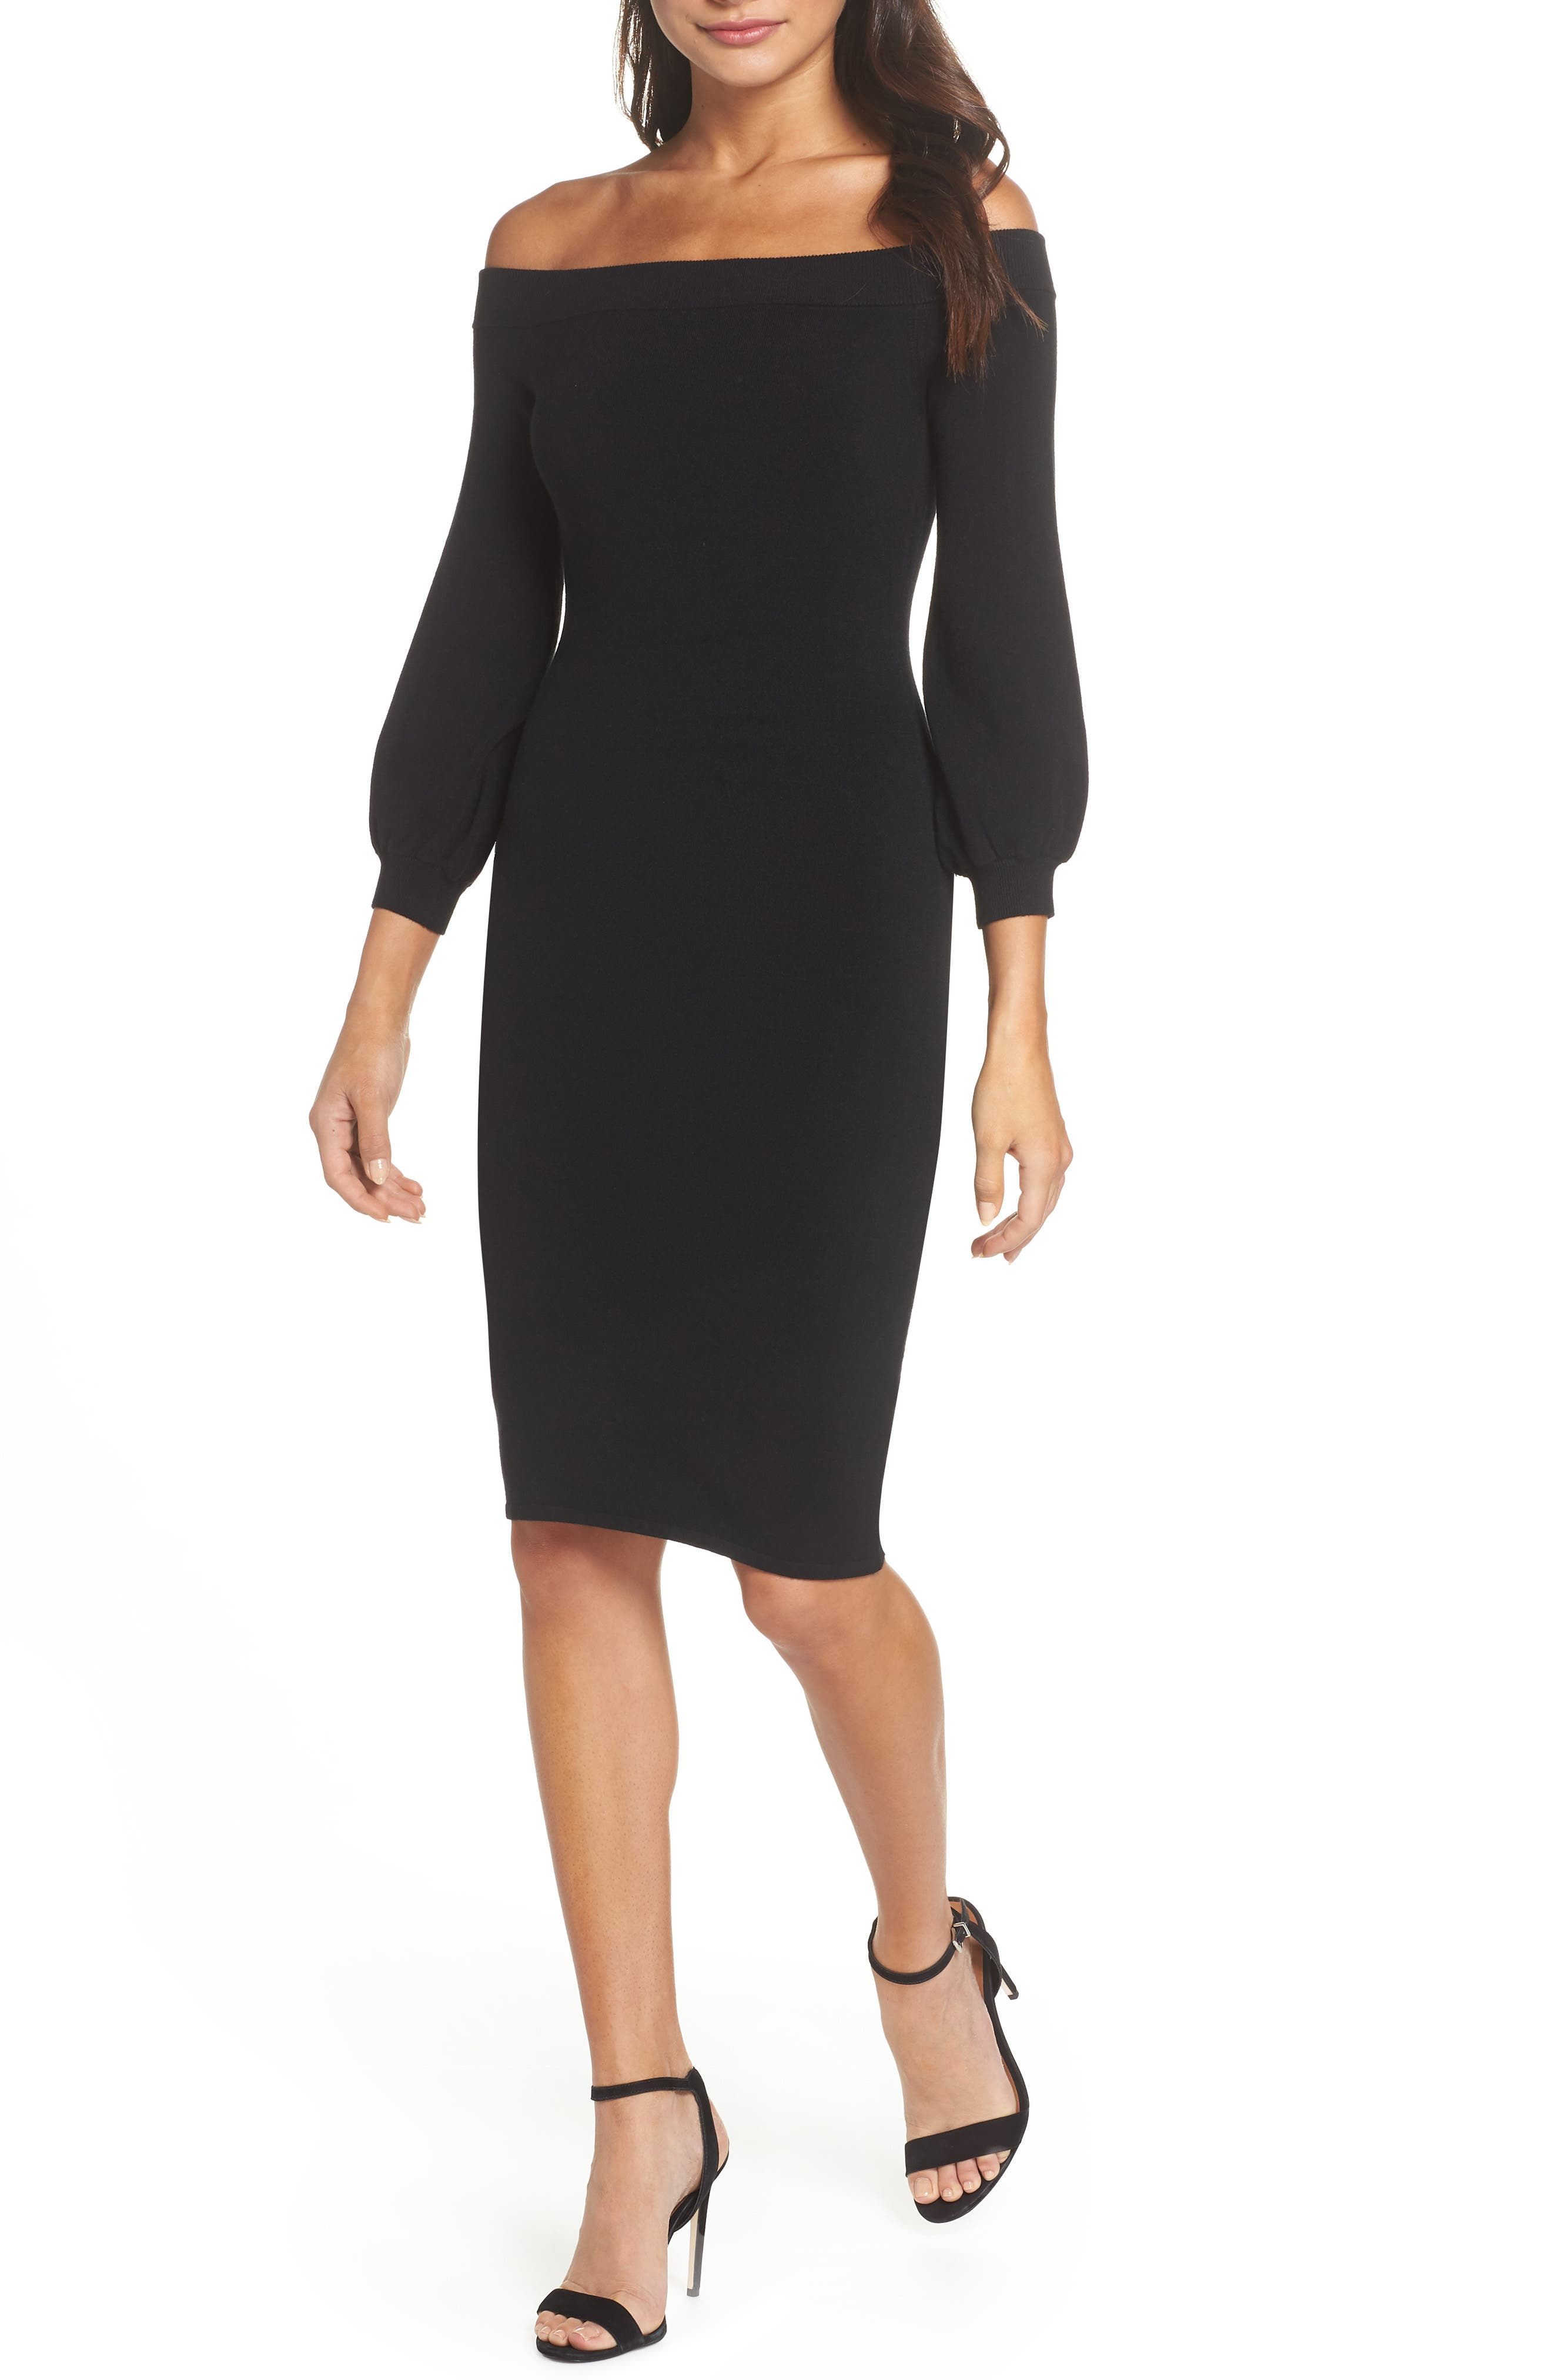 ALI & JAY, Standing Strong Off the Shoulder Midi Sweater Dress, Main thumbnail 1, color, 001